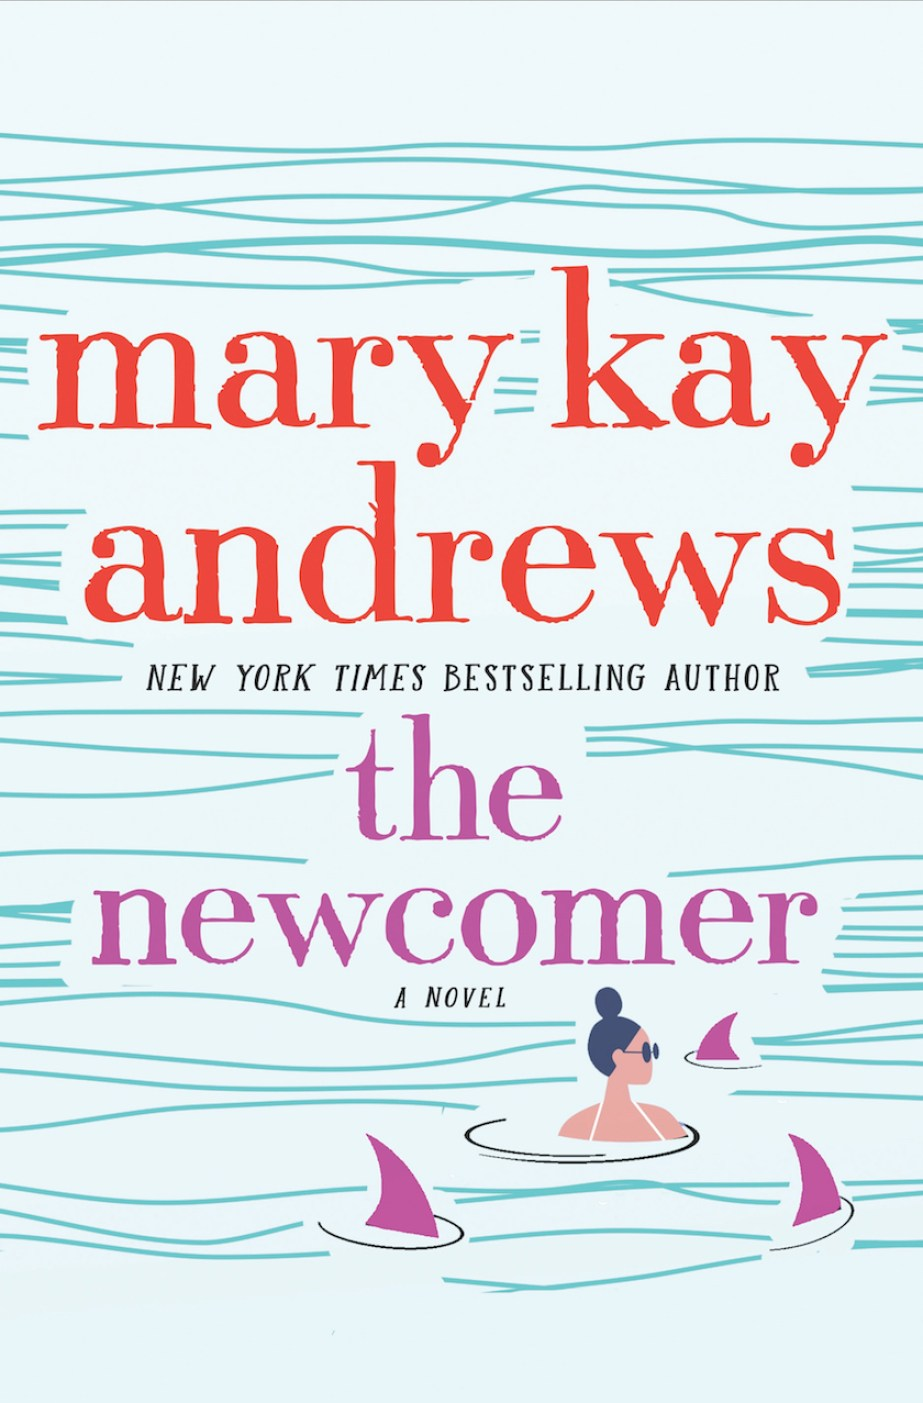 """A cover of a book called """"The Newcomer: A Novel"""" by """"Mary Kay Andrews"""" showing the drawing of a woman with her hair in a bun and sunglasses on swimming in waters with pink shark fins around her. and the words """"New York Times Bestselling Author"""""""